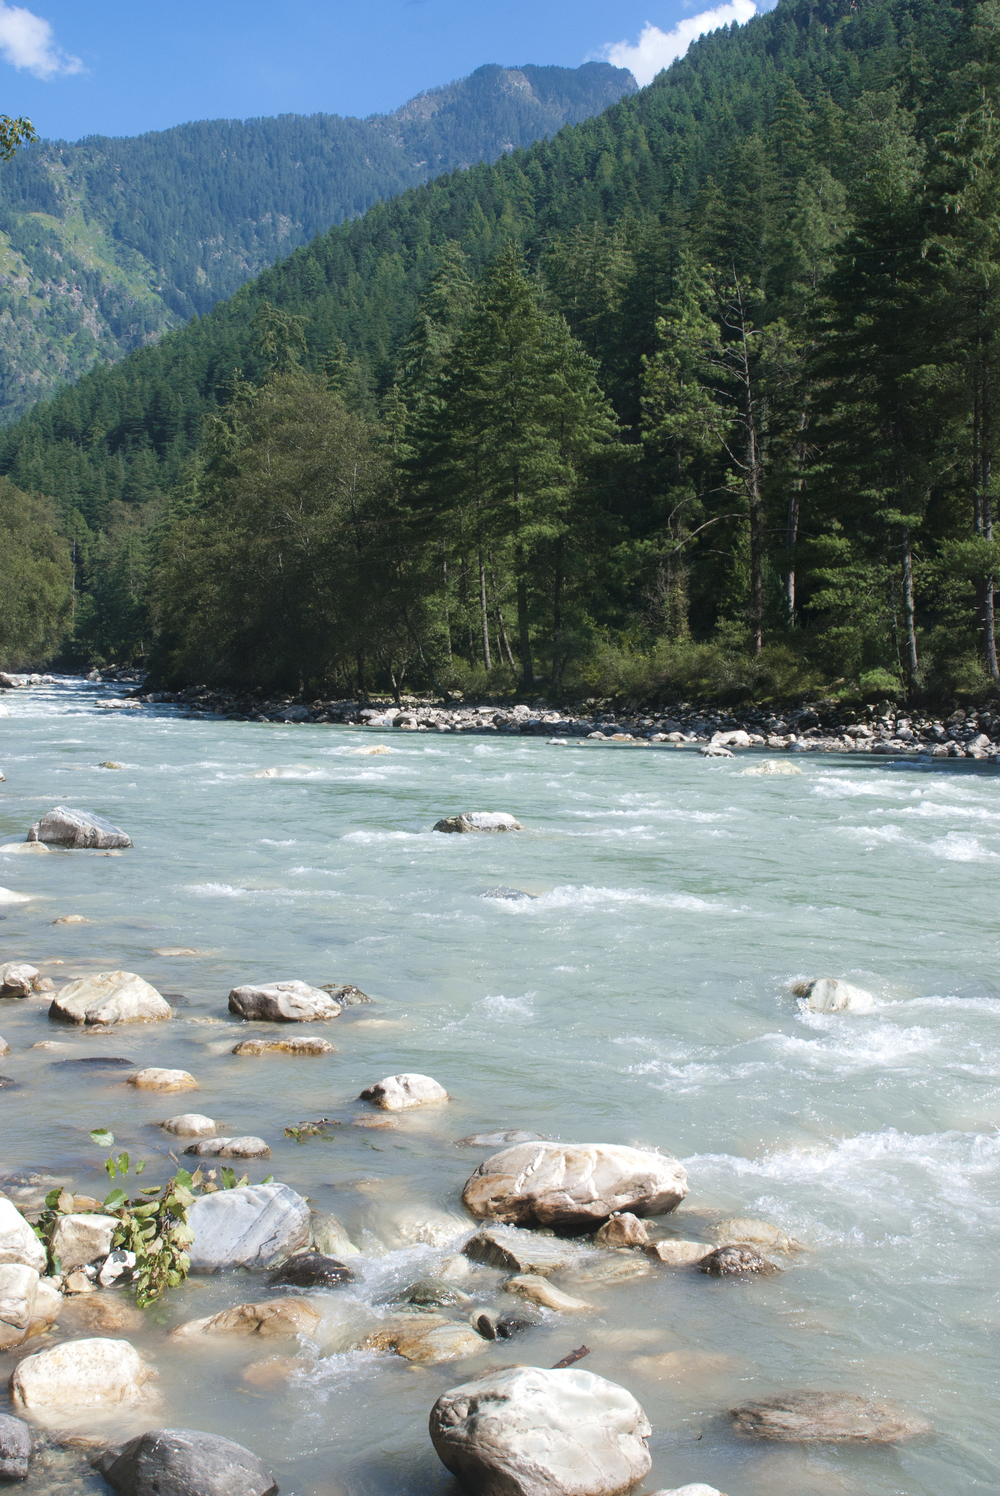 The Paravati River nestled in the Valley.